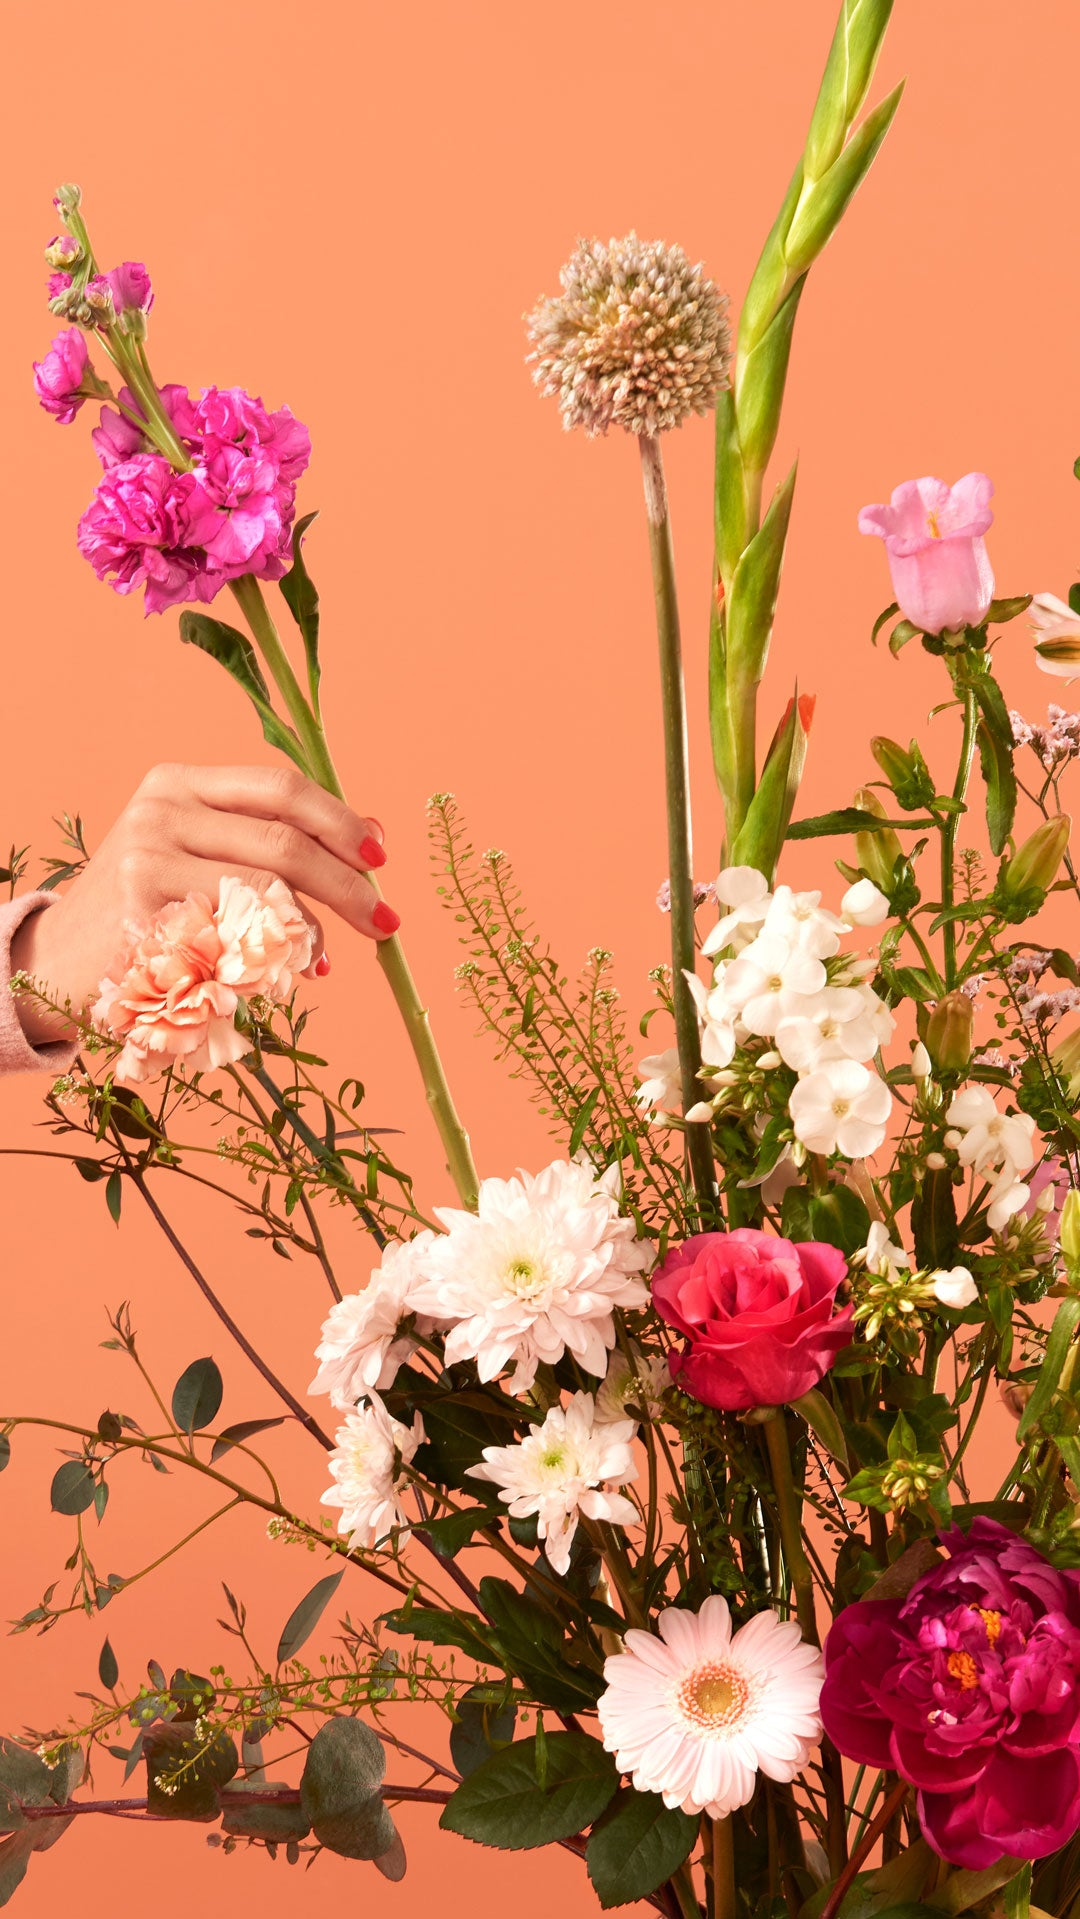 Wallpaper of bloomon bouquet with one hand